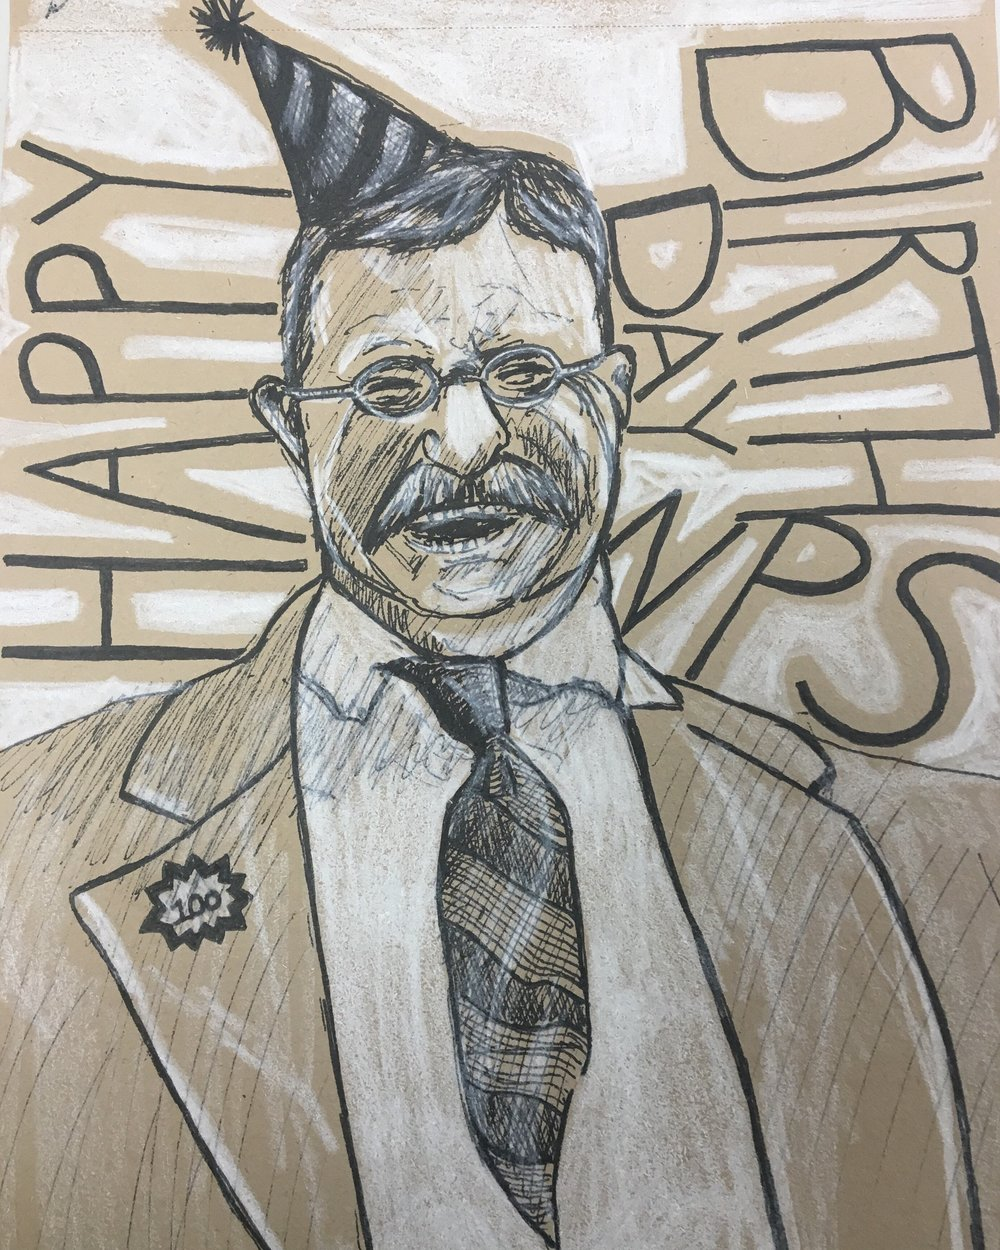 Teddy Roosevelt celebrating his greatest achievement, pen and colored pencil on toned paper.